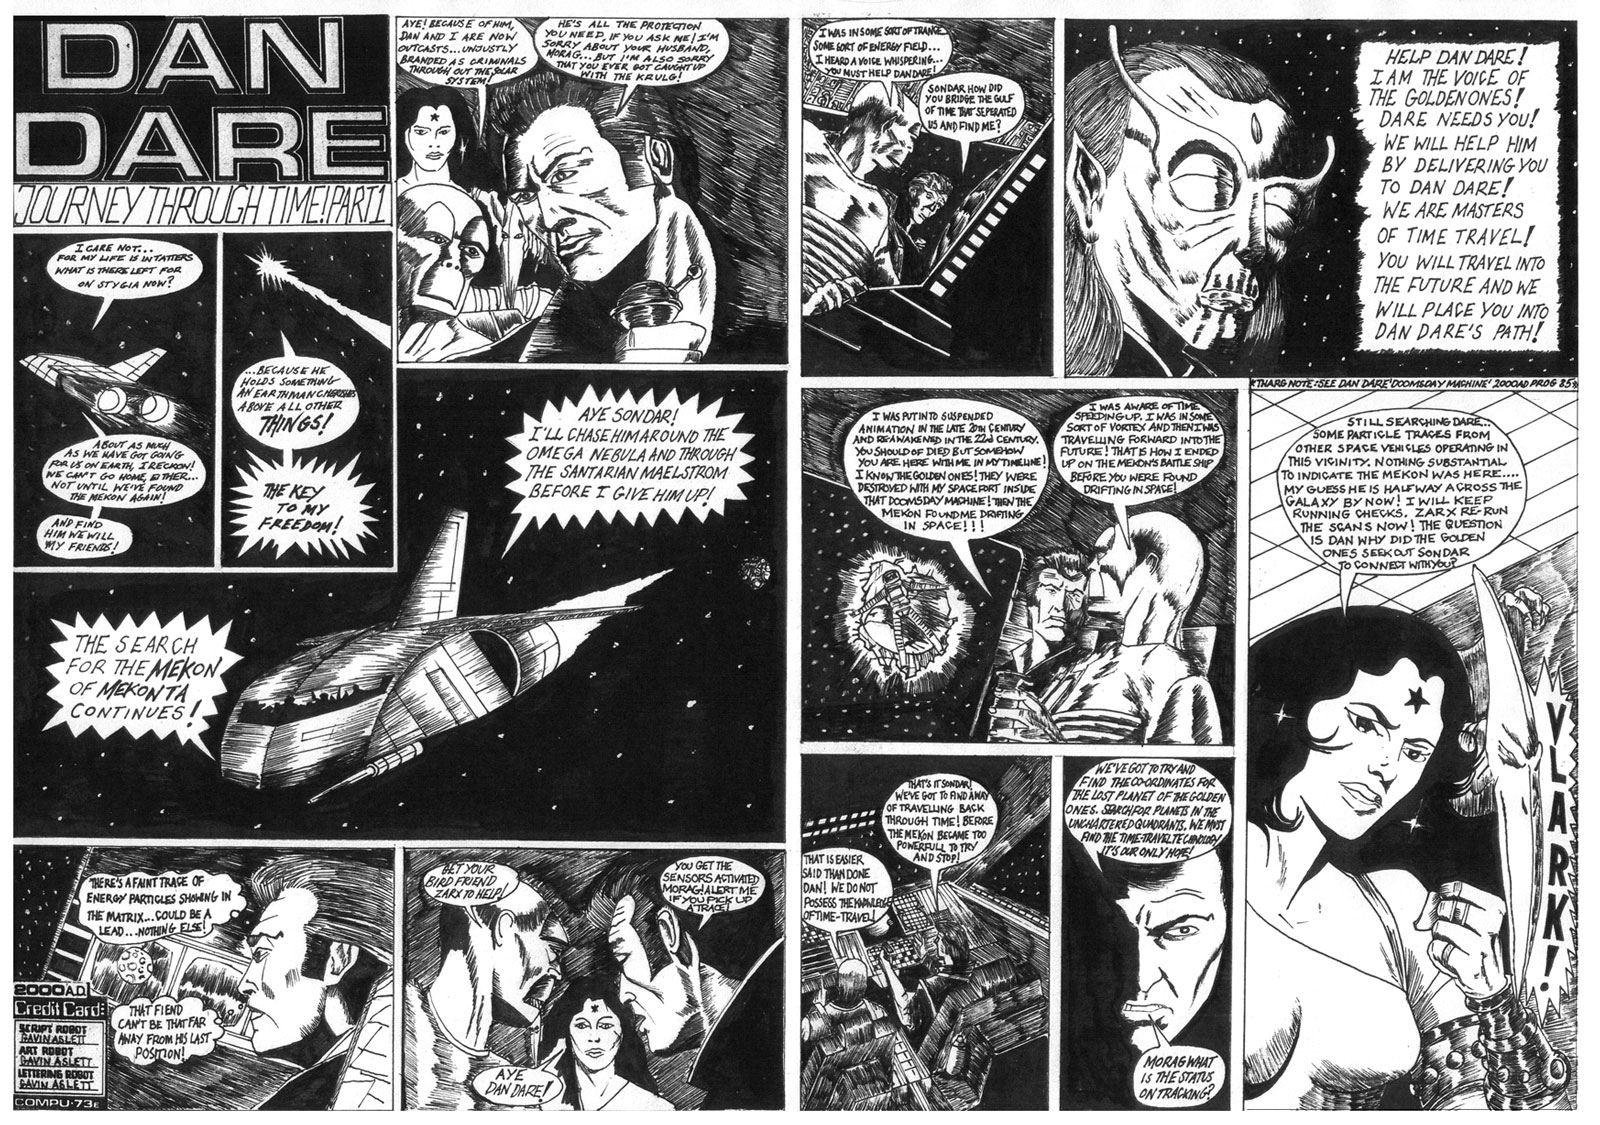 Dan Dare - Journey Through Time by Gavin Aslett: